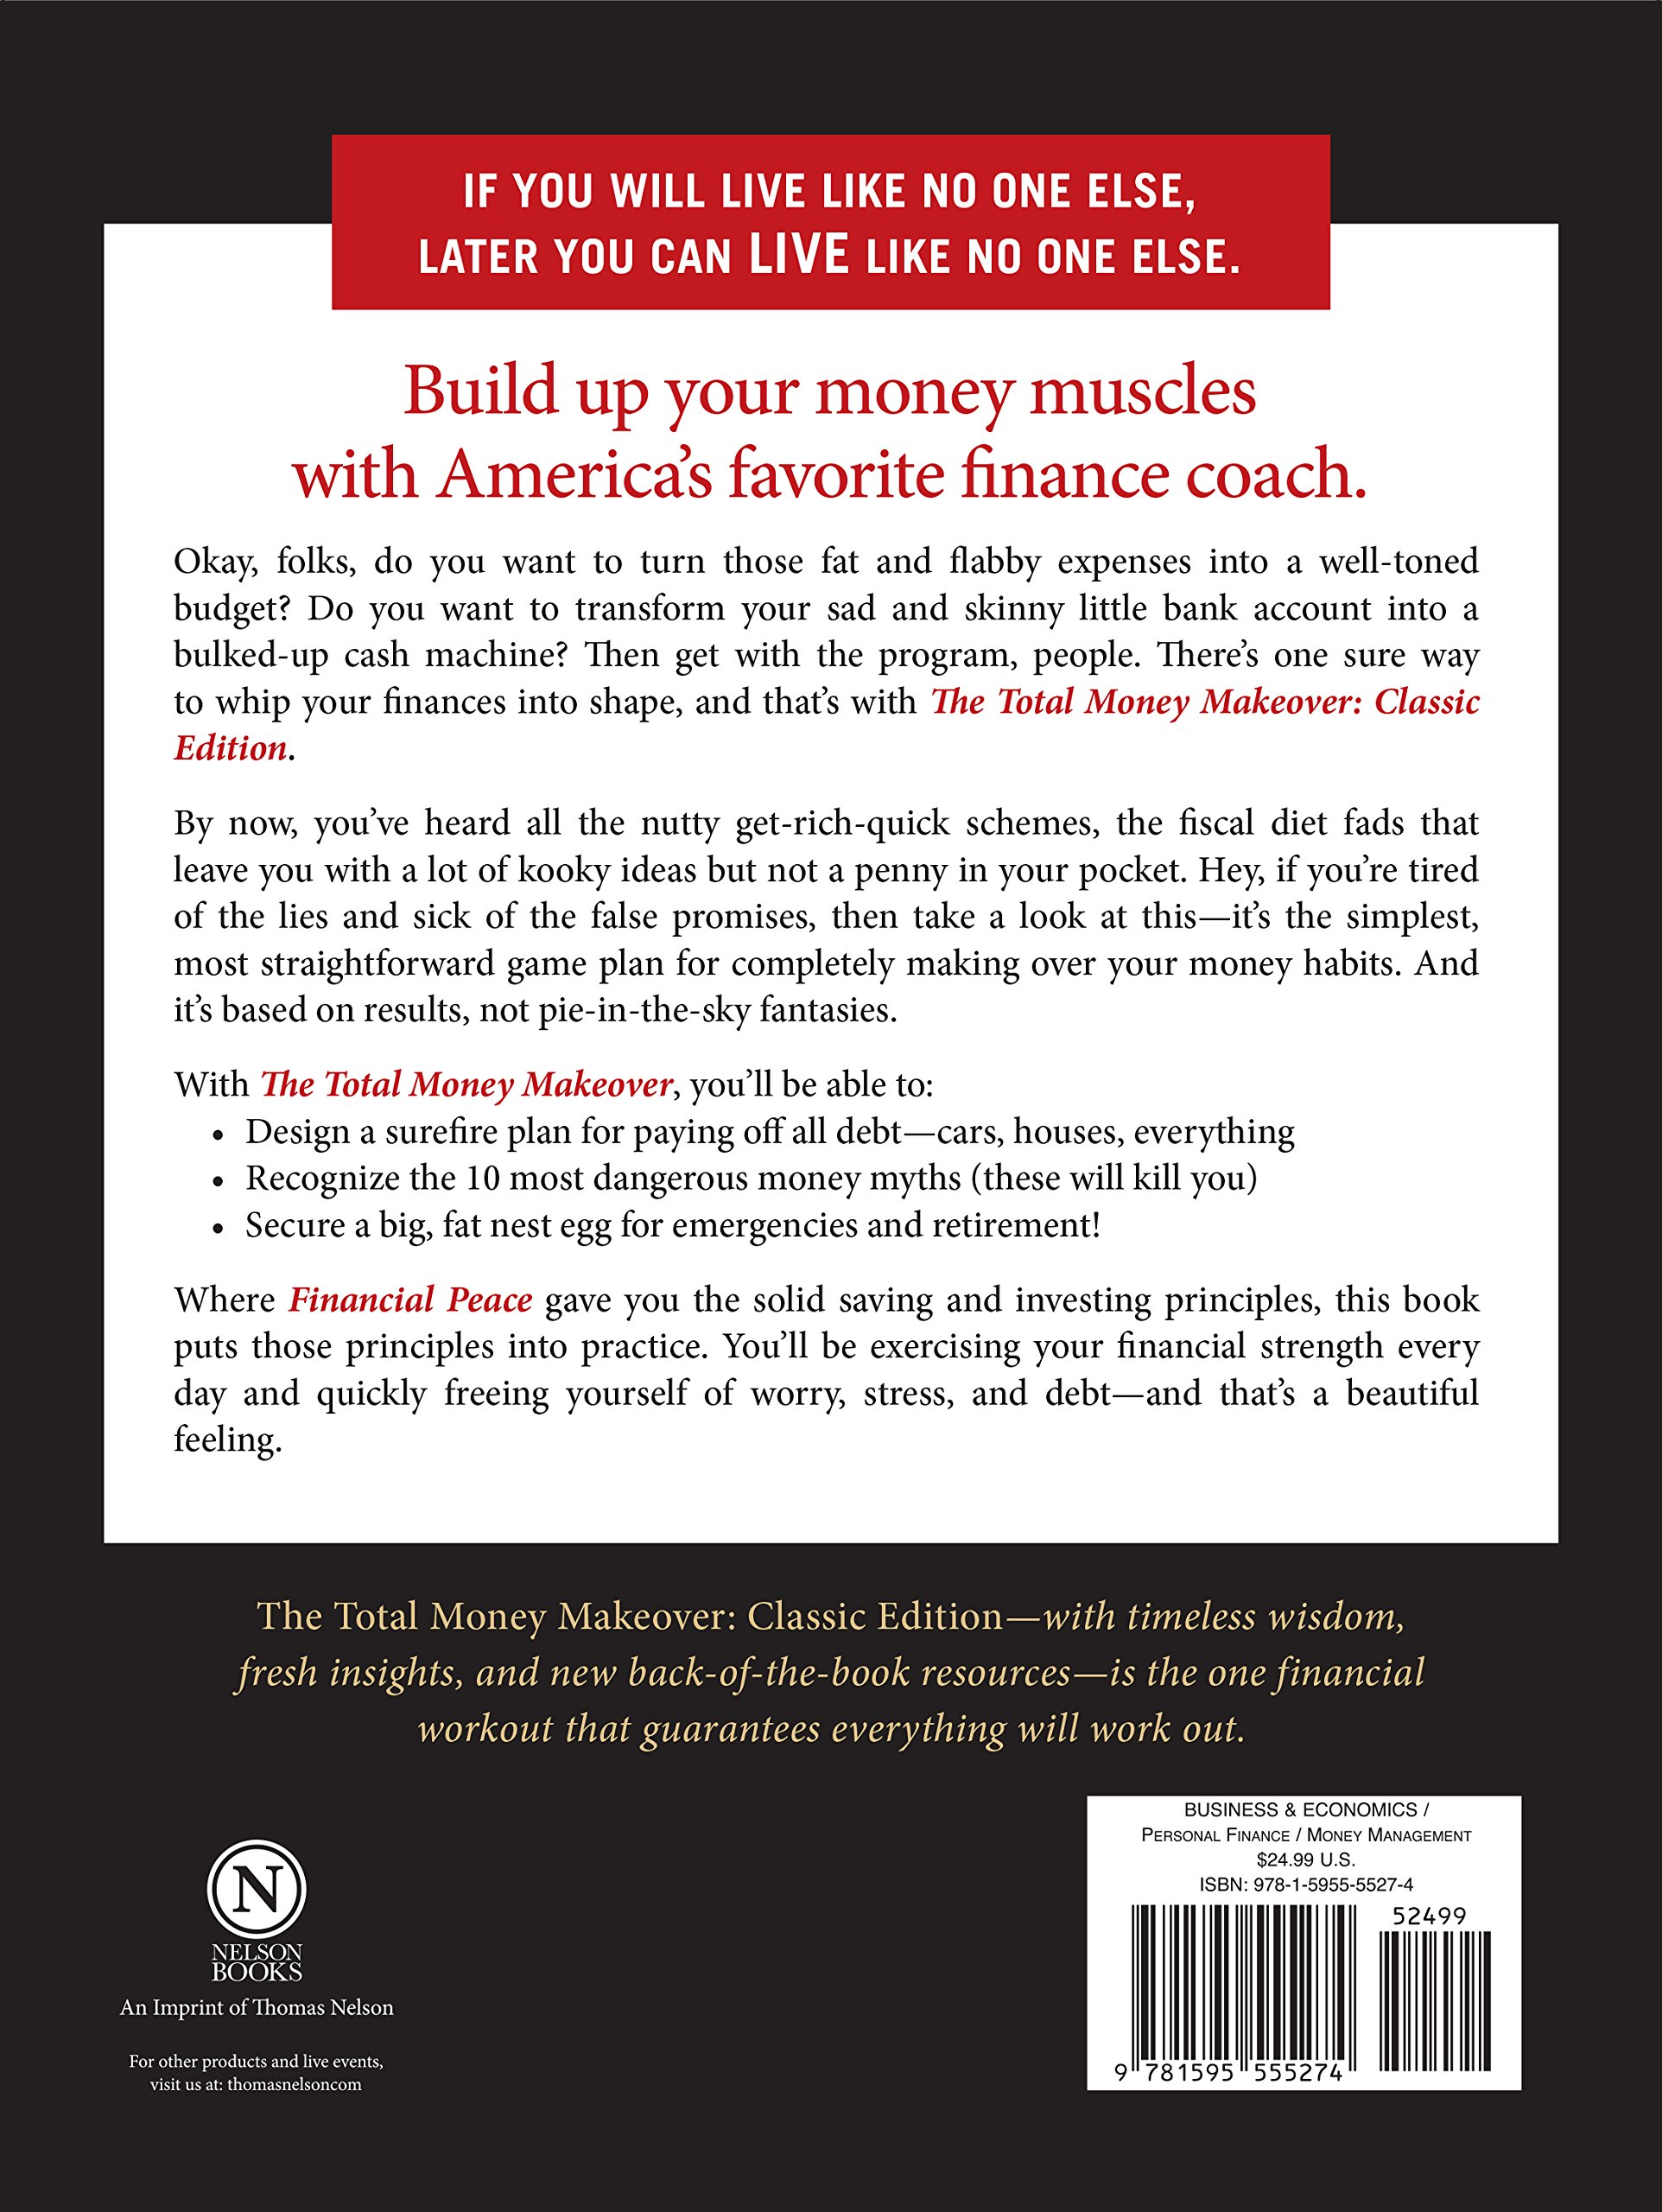 The Total Money Makeover: Classic Edition: A Proven Plan for Financial Fitness by HarperCollins Christian Pub.